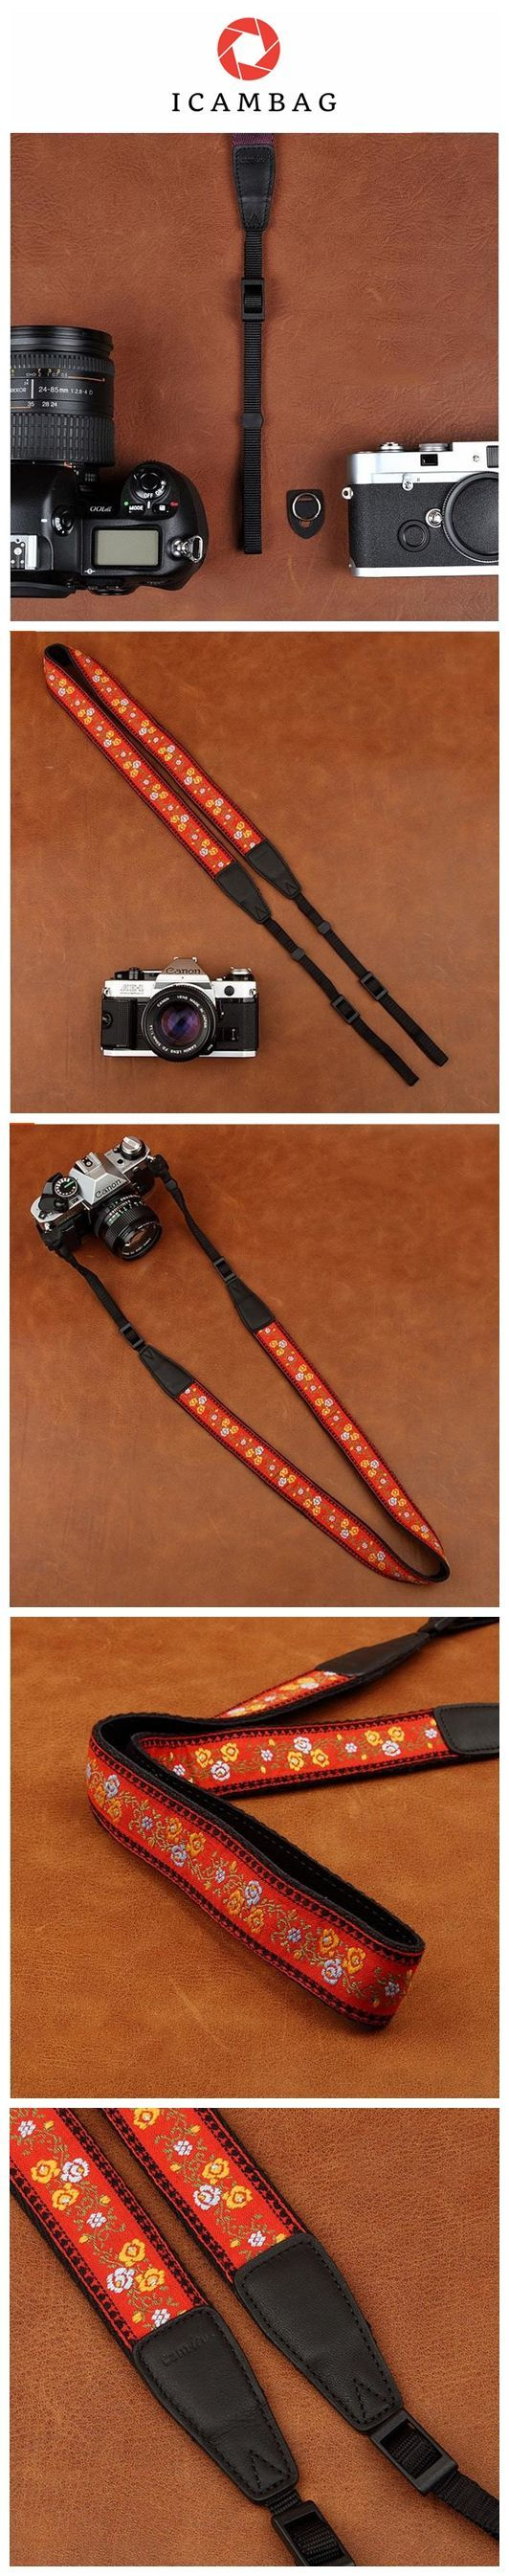 Weaving Style Strap Sony Nikon Canon Handmade Leather Camera Strap 8421 Handmade with top layer cow leather and denim. It can fit almost every DSLR, SLR and some larger digital cameras. **************